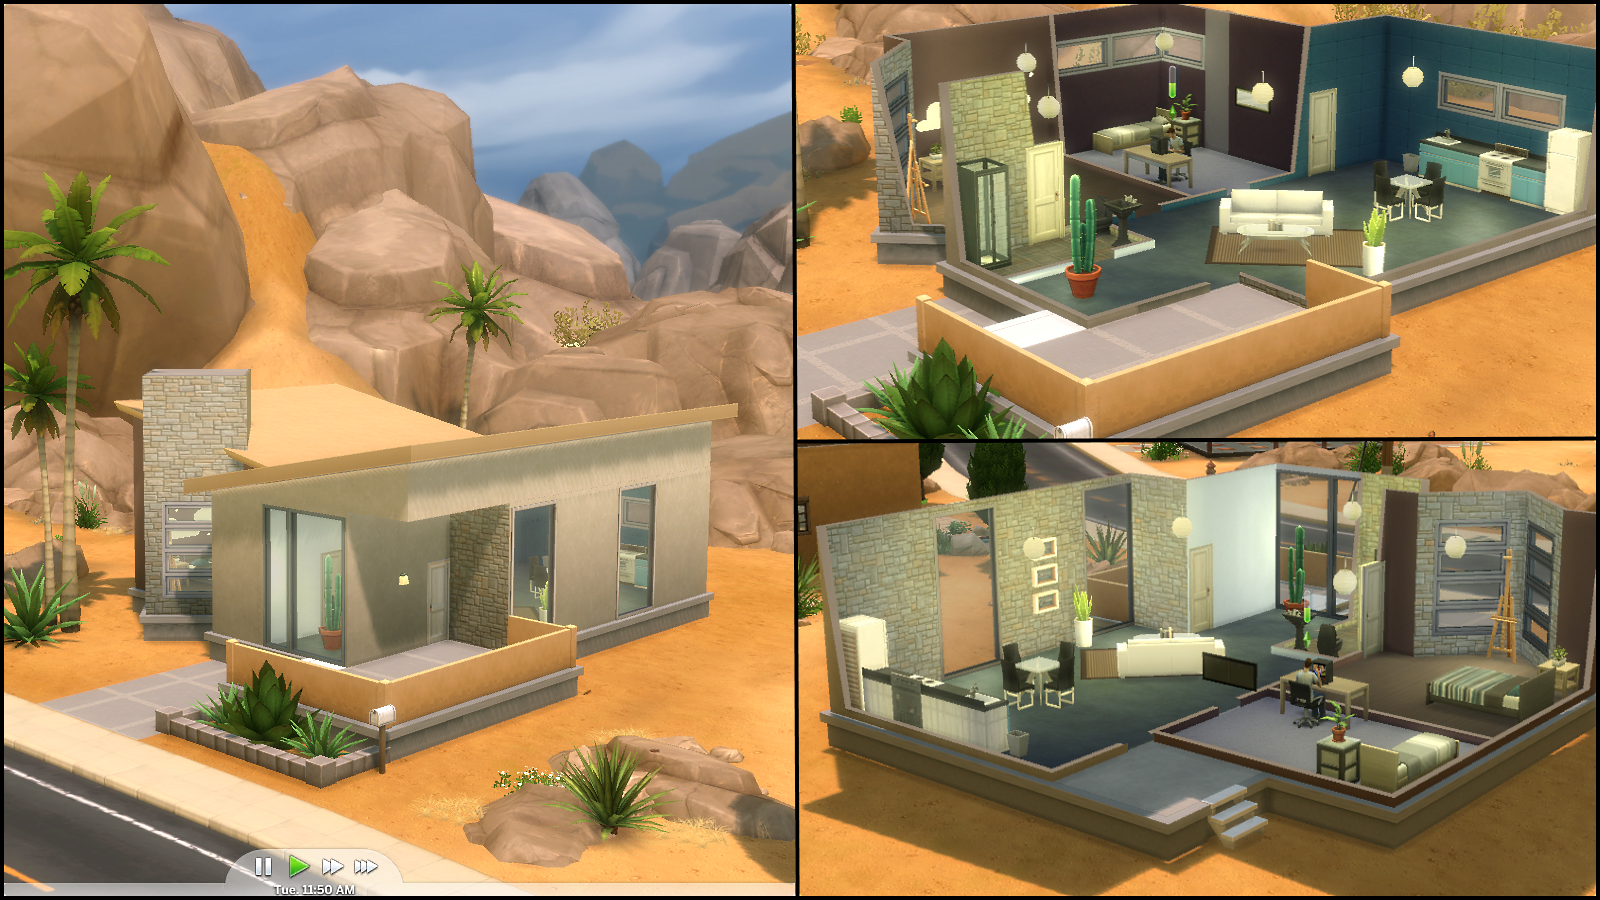 The sims 4 gallery spotlight simsvip for Desert style house plans